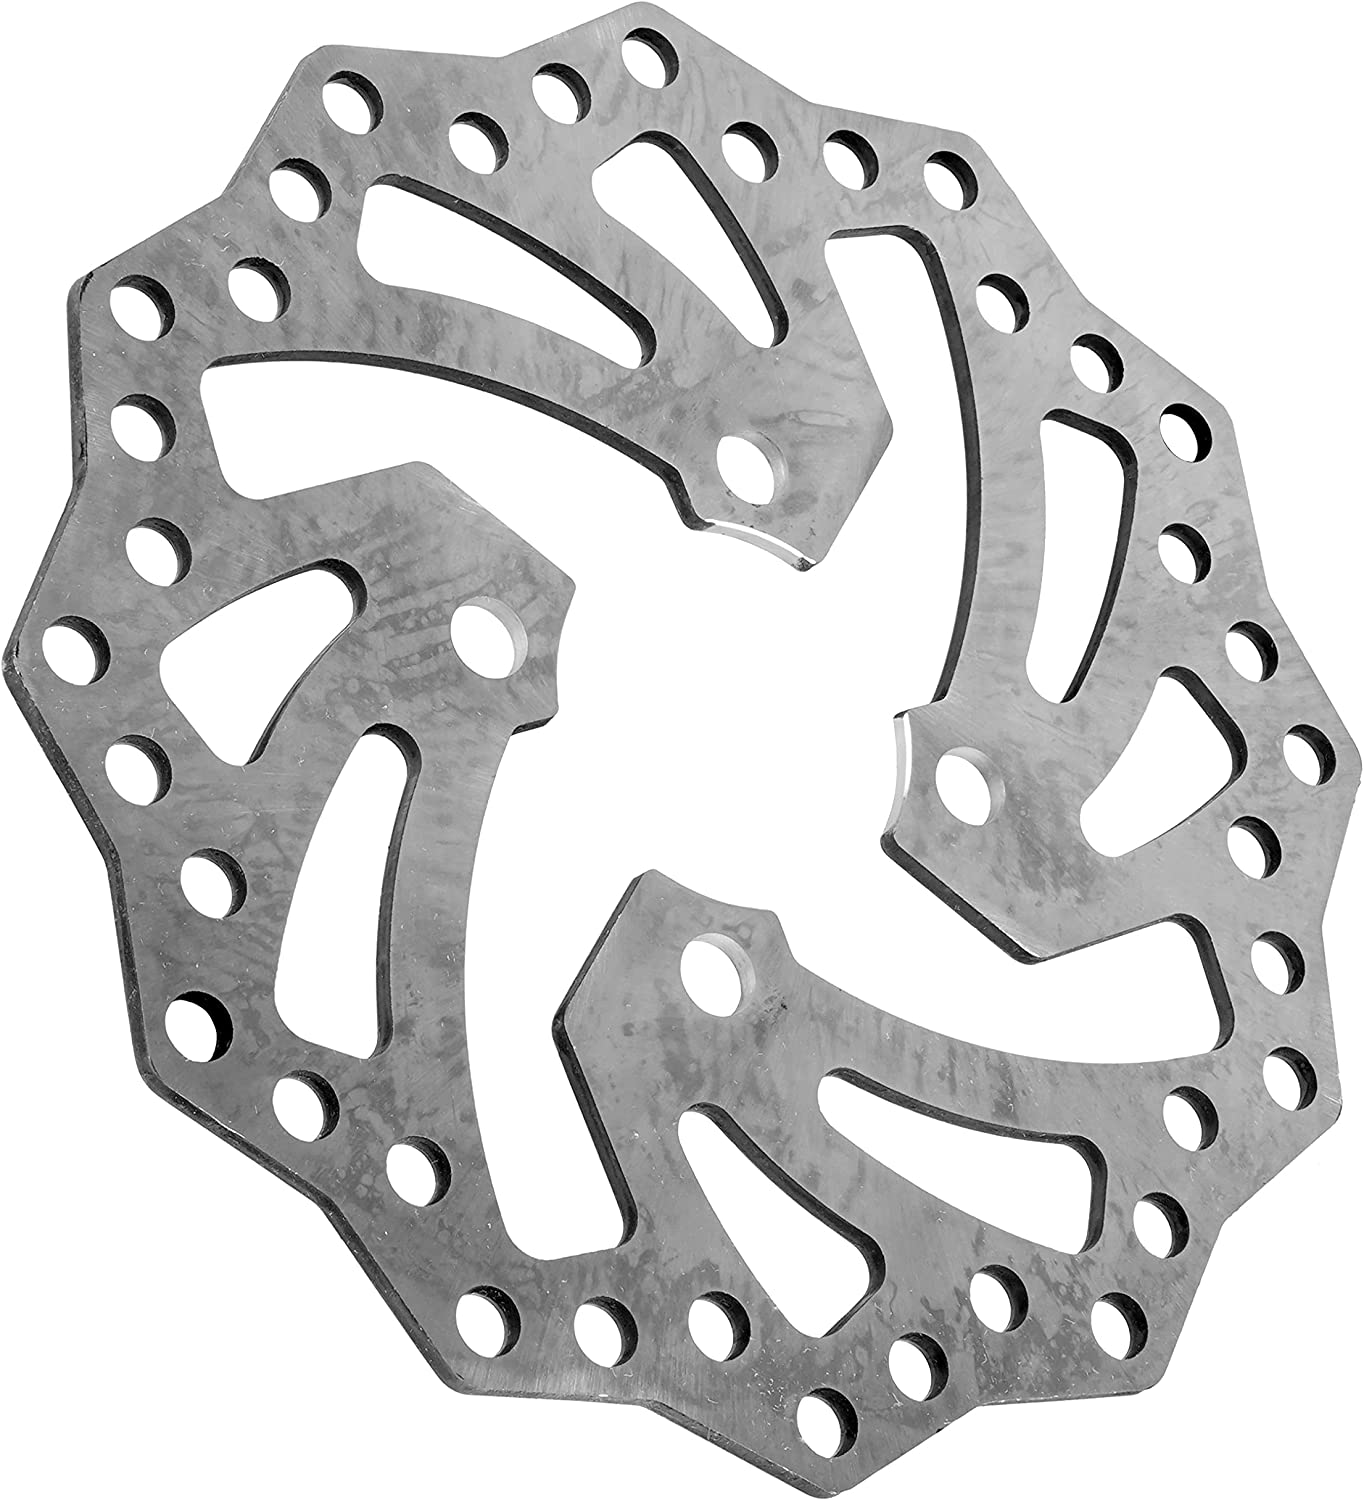 Caltric compatible with Bombing new work Rear Brake Disc Rotor 1S3-2582W-2 Yamaha Ranking TOP7